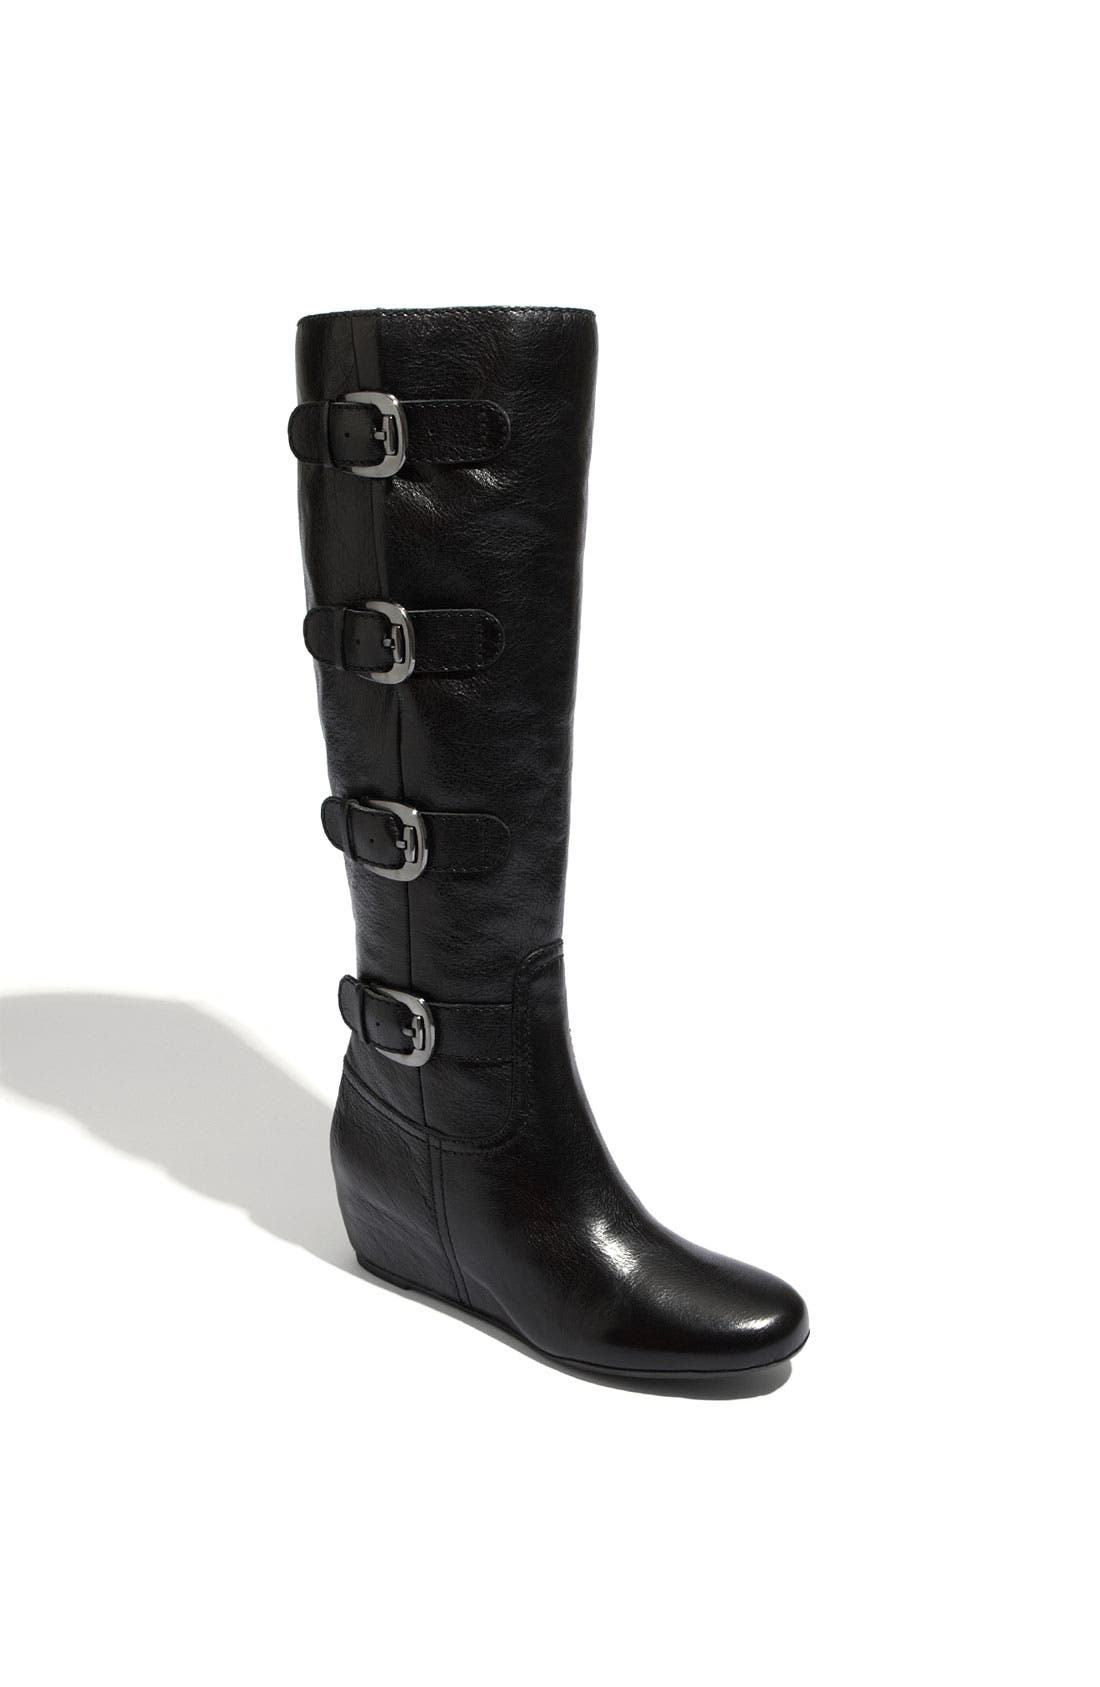 Alternate Image 1 Selected - Franco Sarto 'Imply' Boot